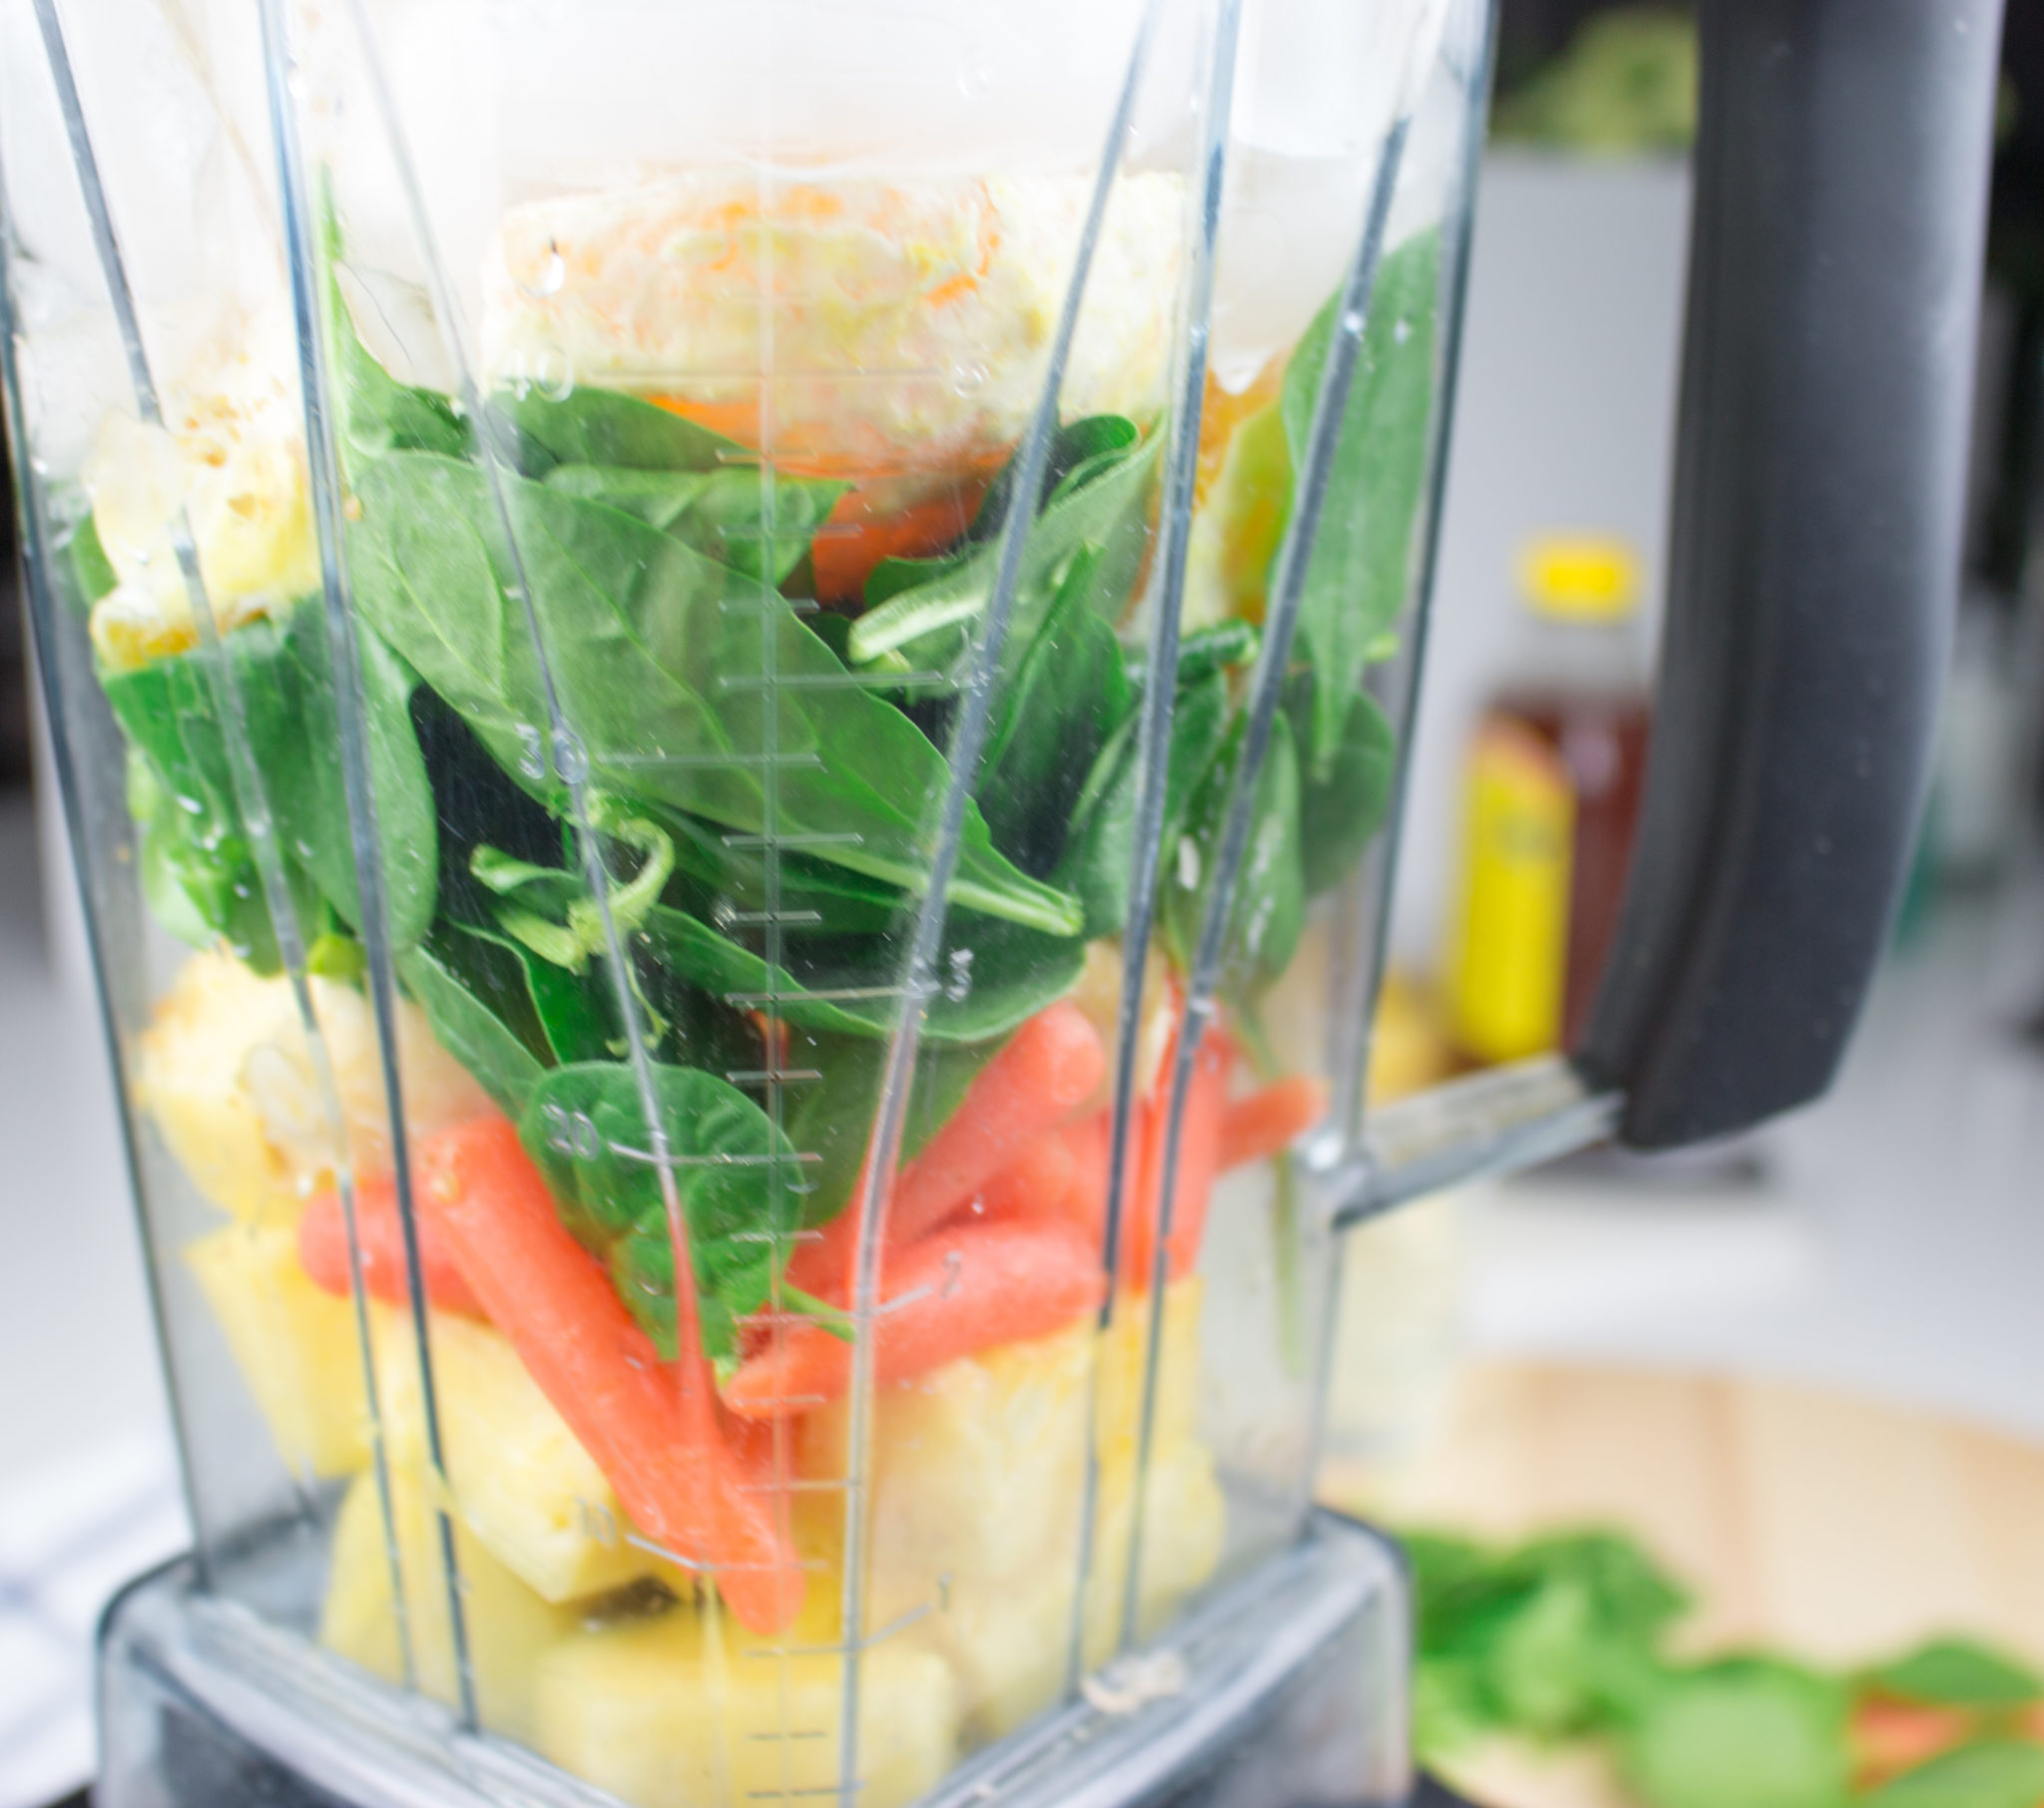 Green smoothies are satisfying any time of day. Need a quick breakfast at home or on the go? This is the recipe for you. No matter what your taste, make it your way.www.veganglutenfreelife.com/green-smoothie/